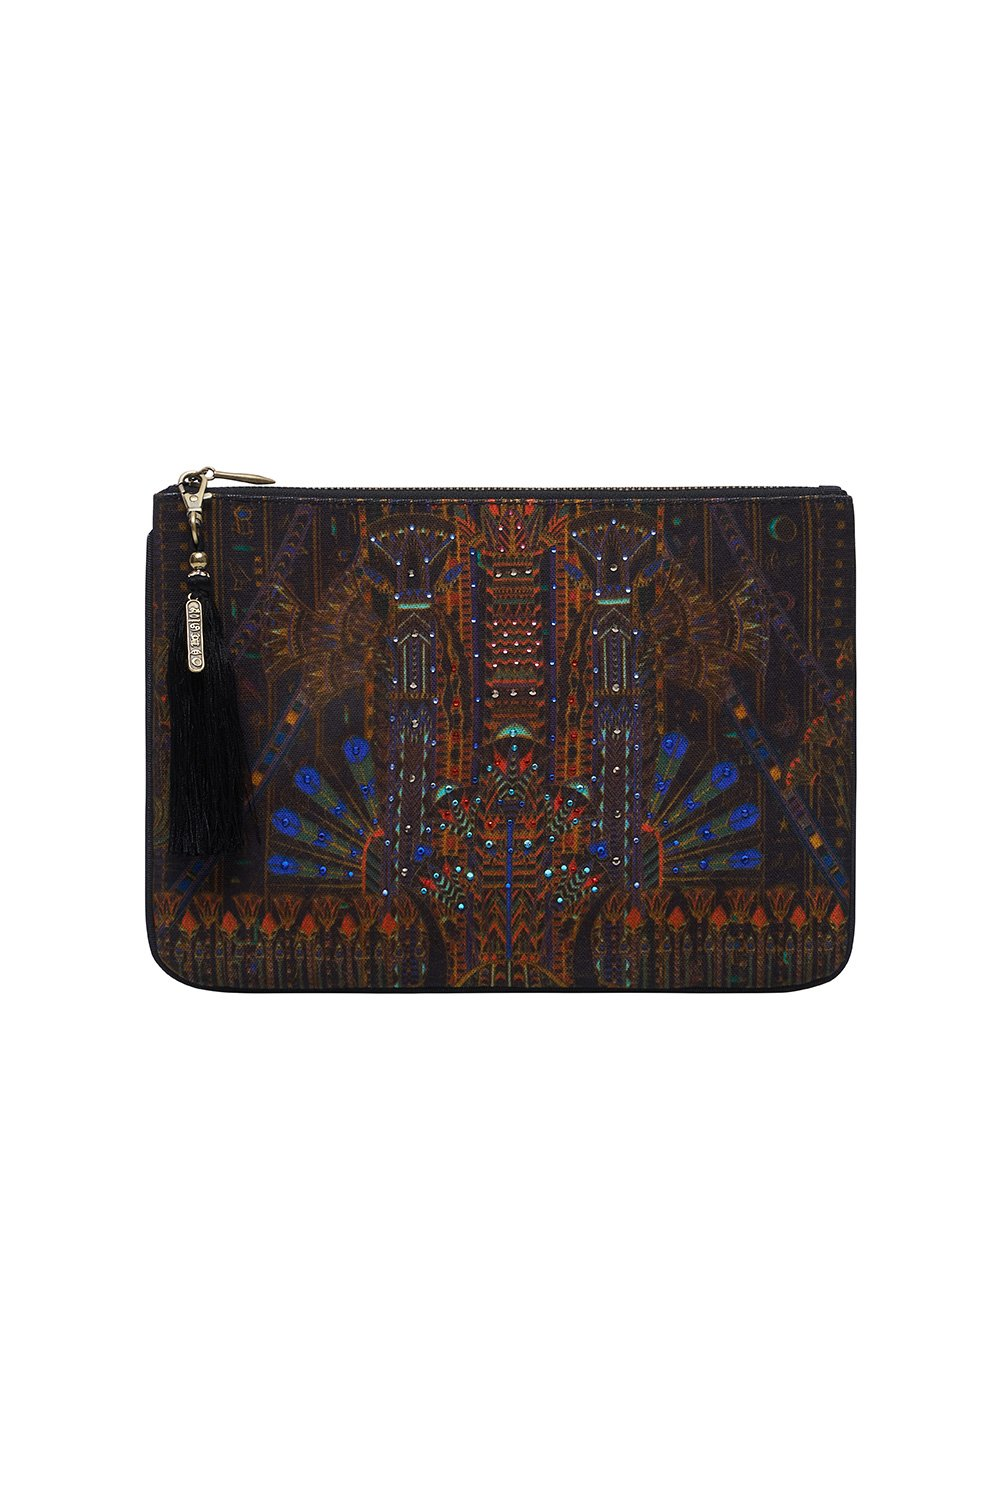 SMALL CANVAS CLUTCH GATEWAY TO GIZA